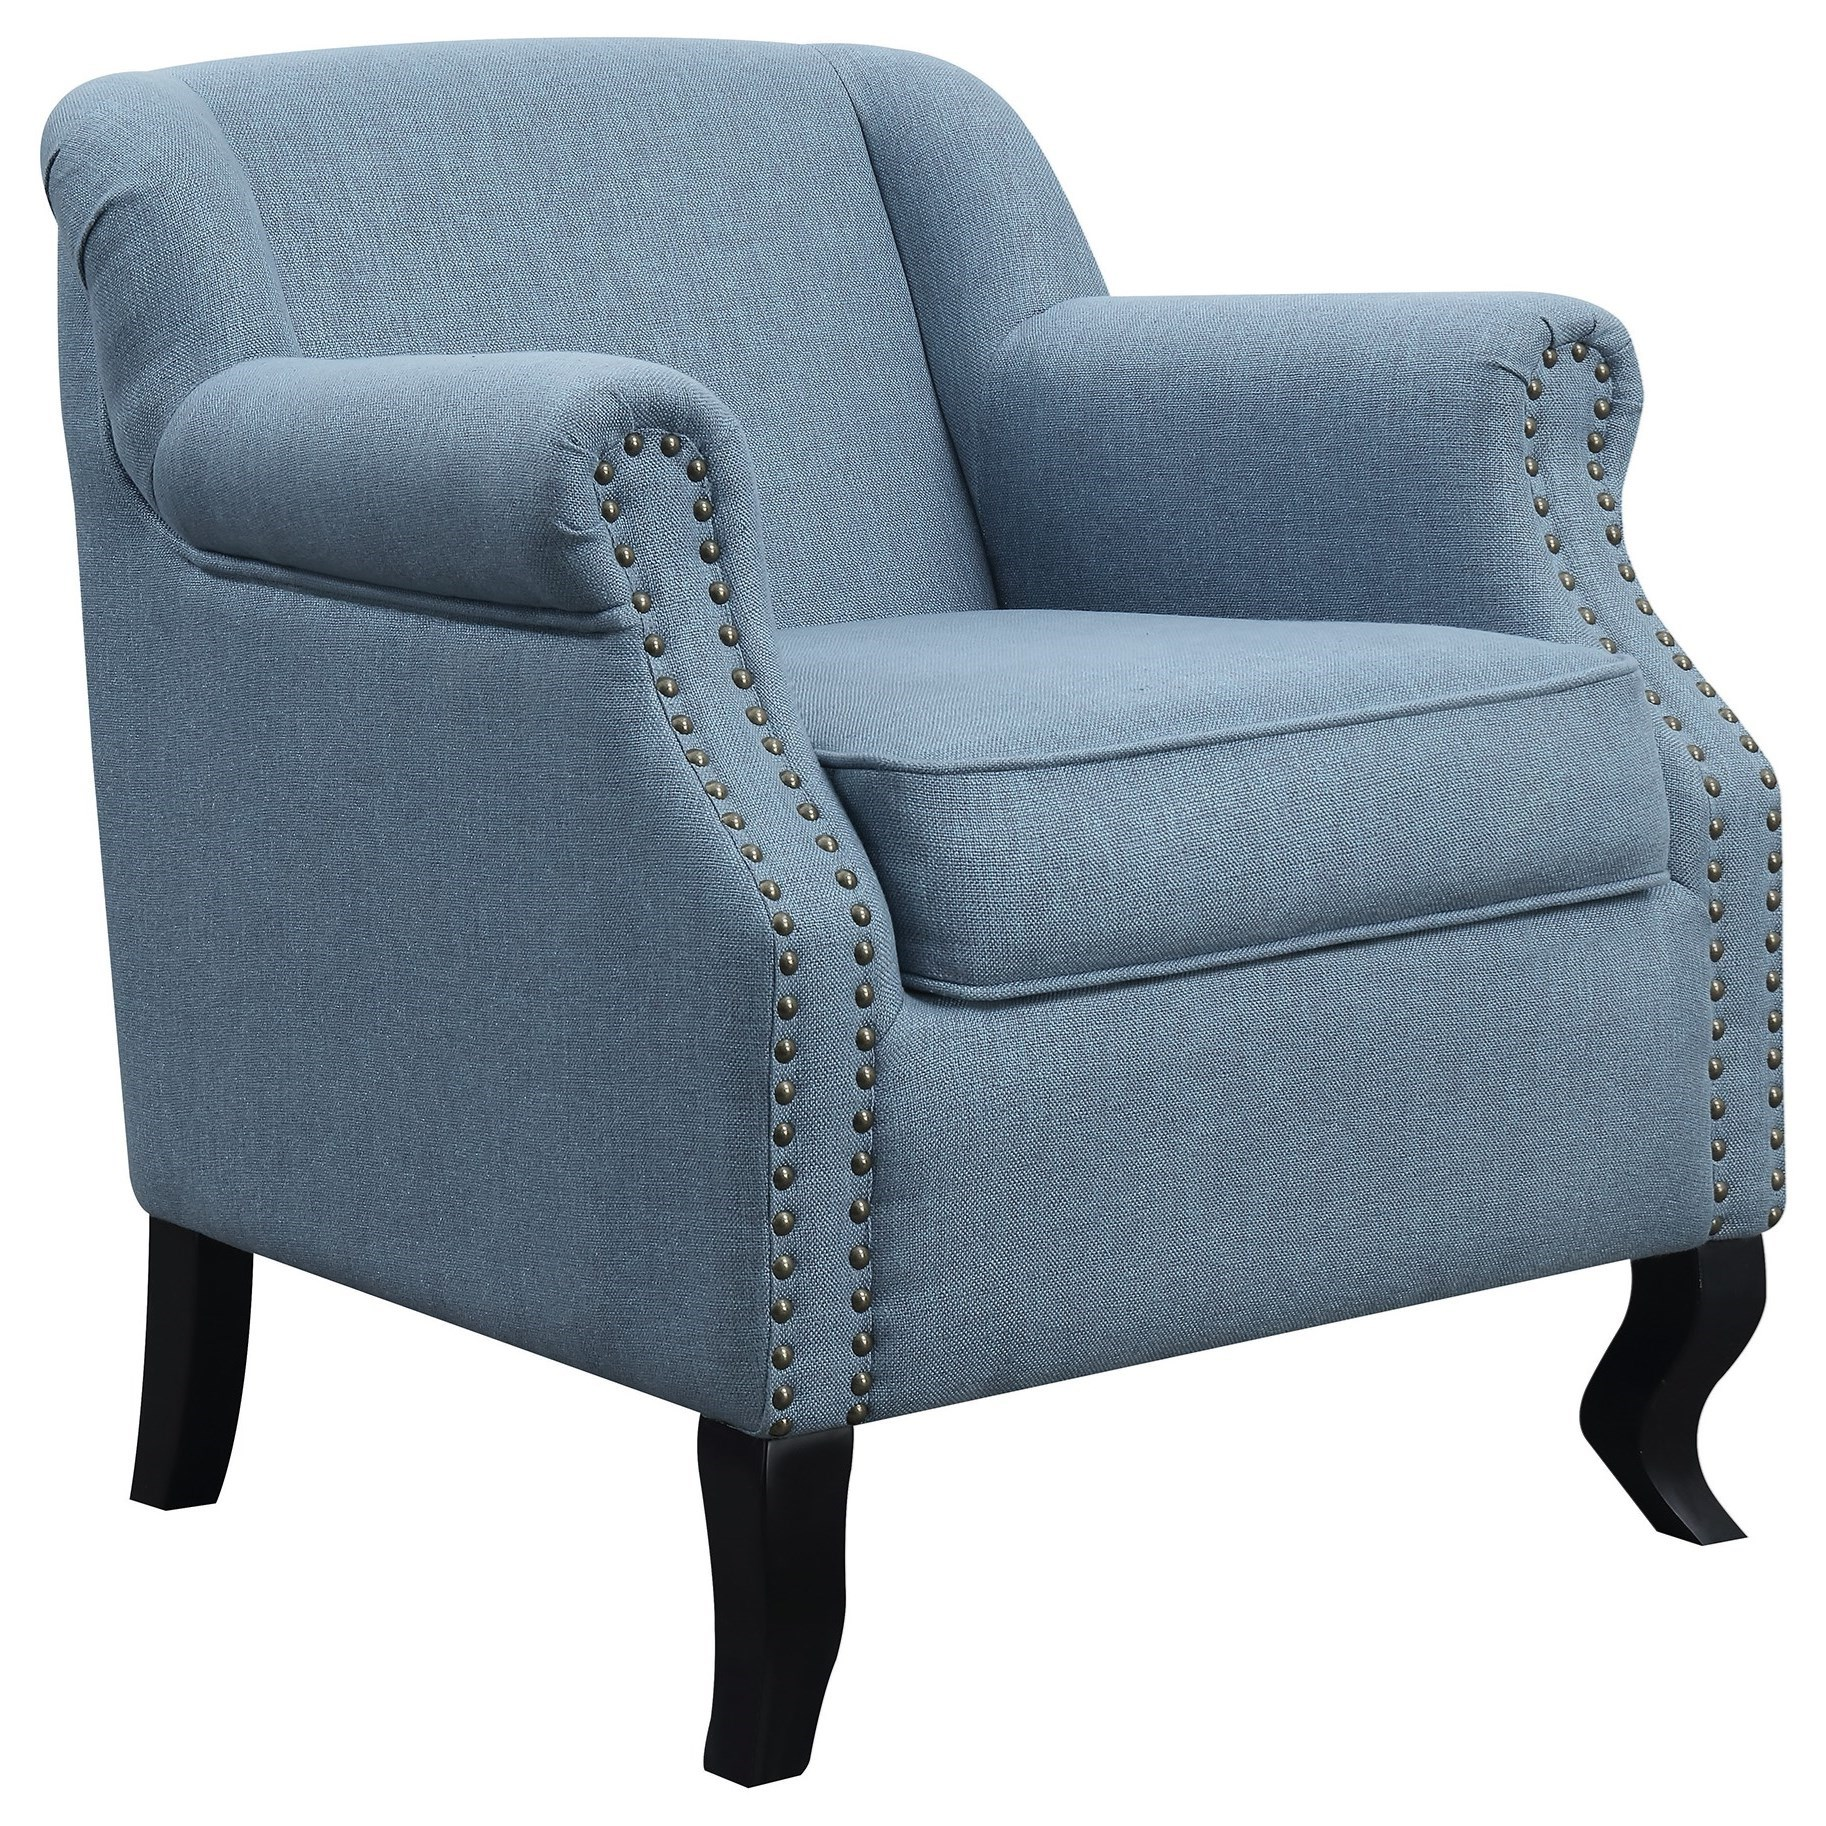 Coaster Accent Seating Accent Chair - Item Number: 903360